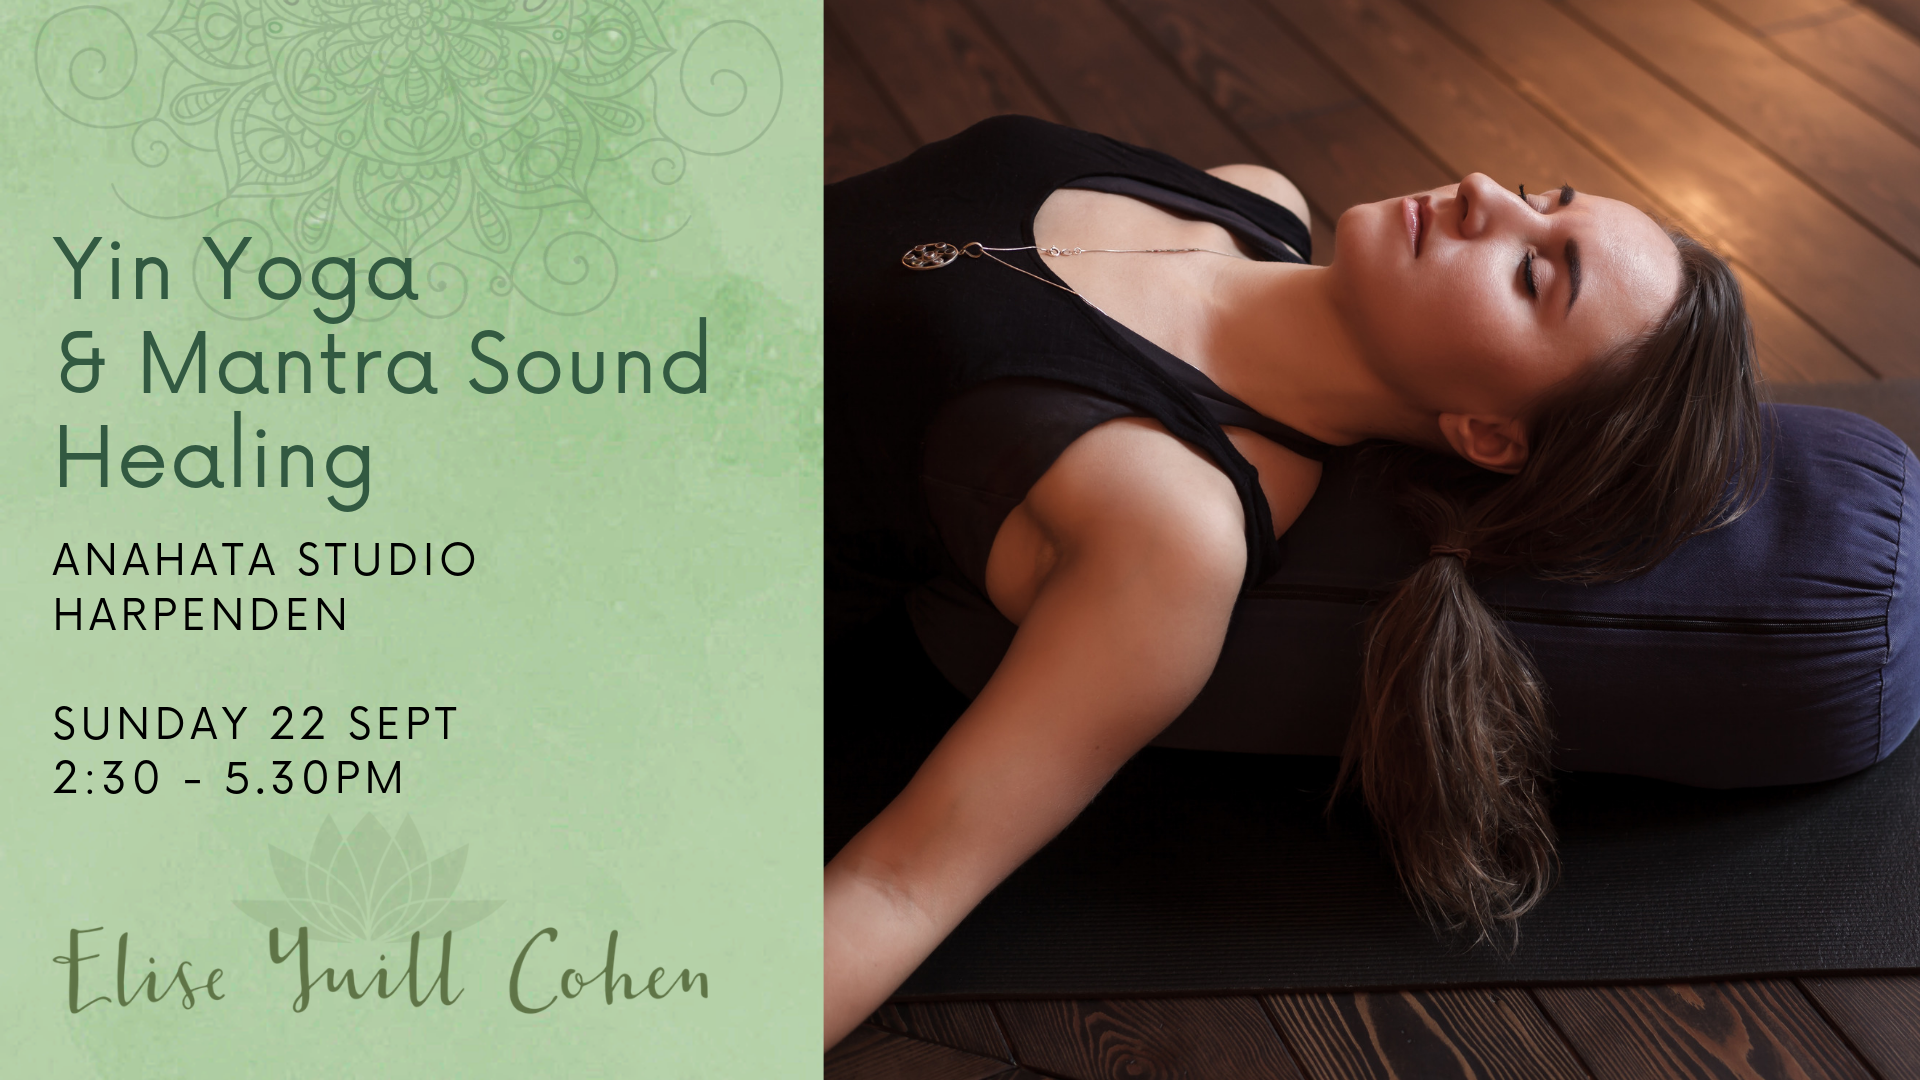 Copy of FB Event Template - YIN YOGA & MANTRA SOUND HEALING (Anahata Studio, Hertfordshire).png